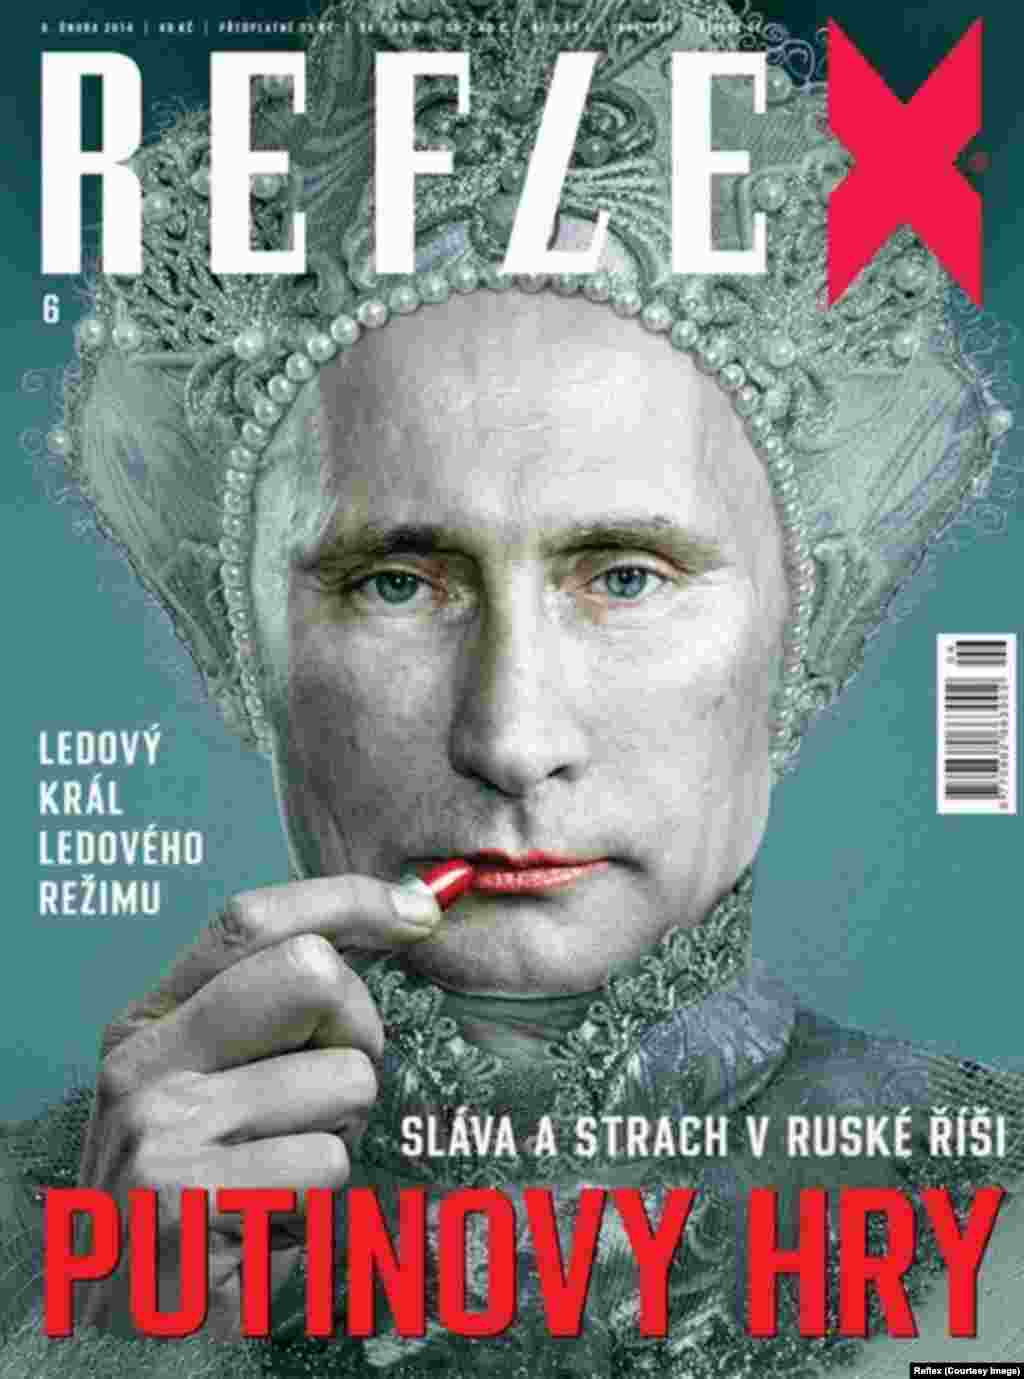 """Reflex,"" a Czech weekly magazine, portrays Putin as an effeminate ice king for its cover story on ""Glory and Fear in the Russian Empire."""